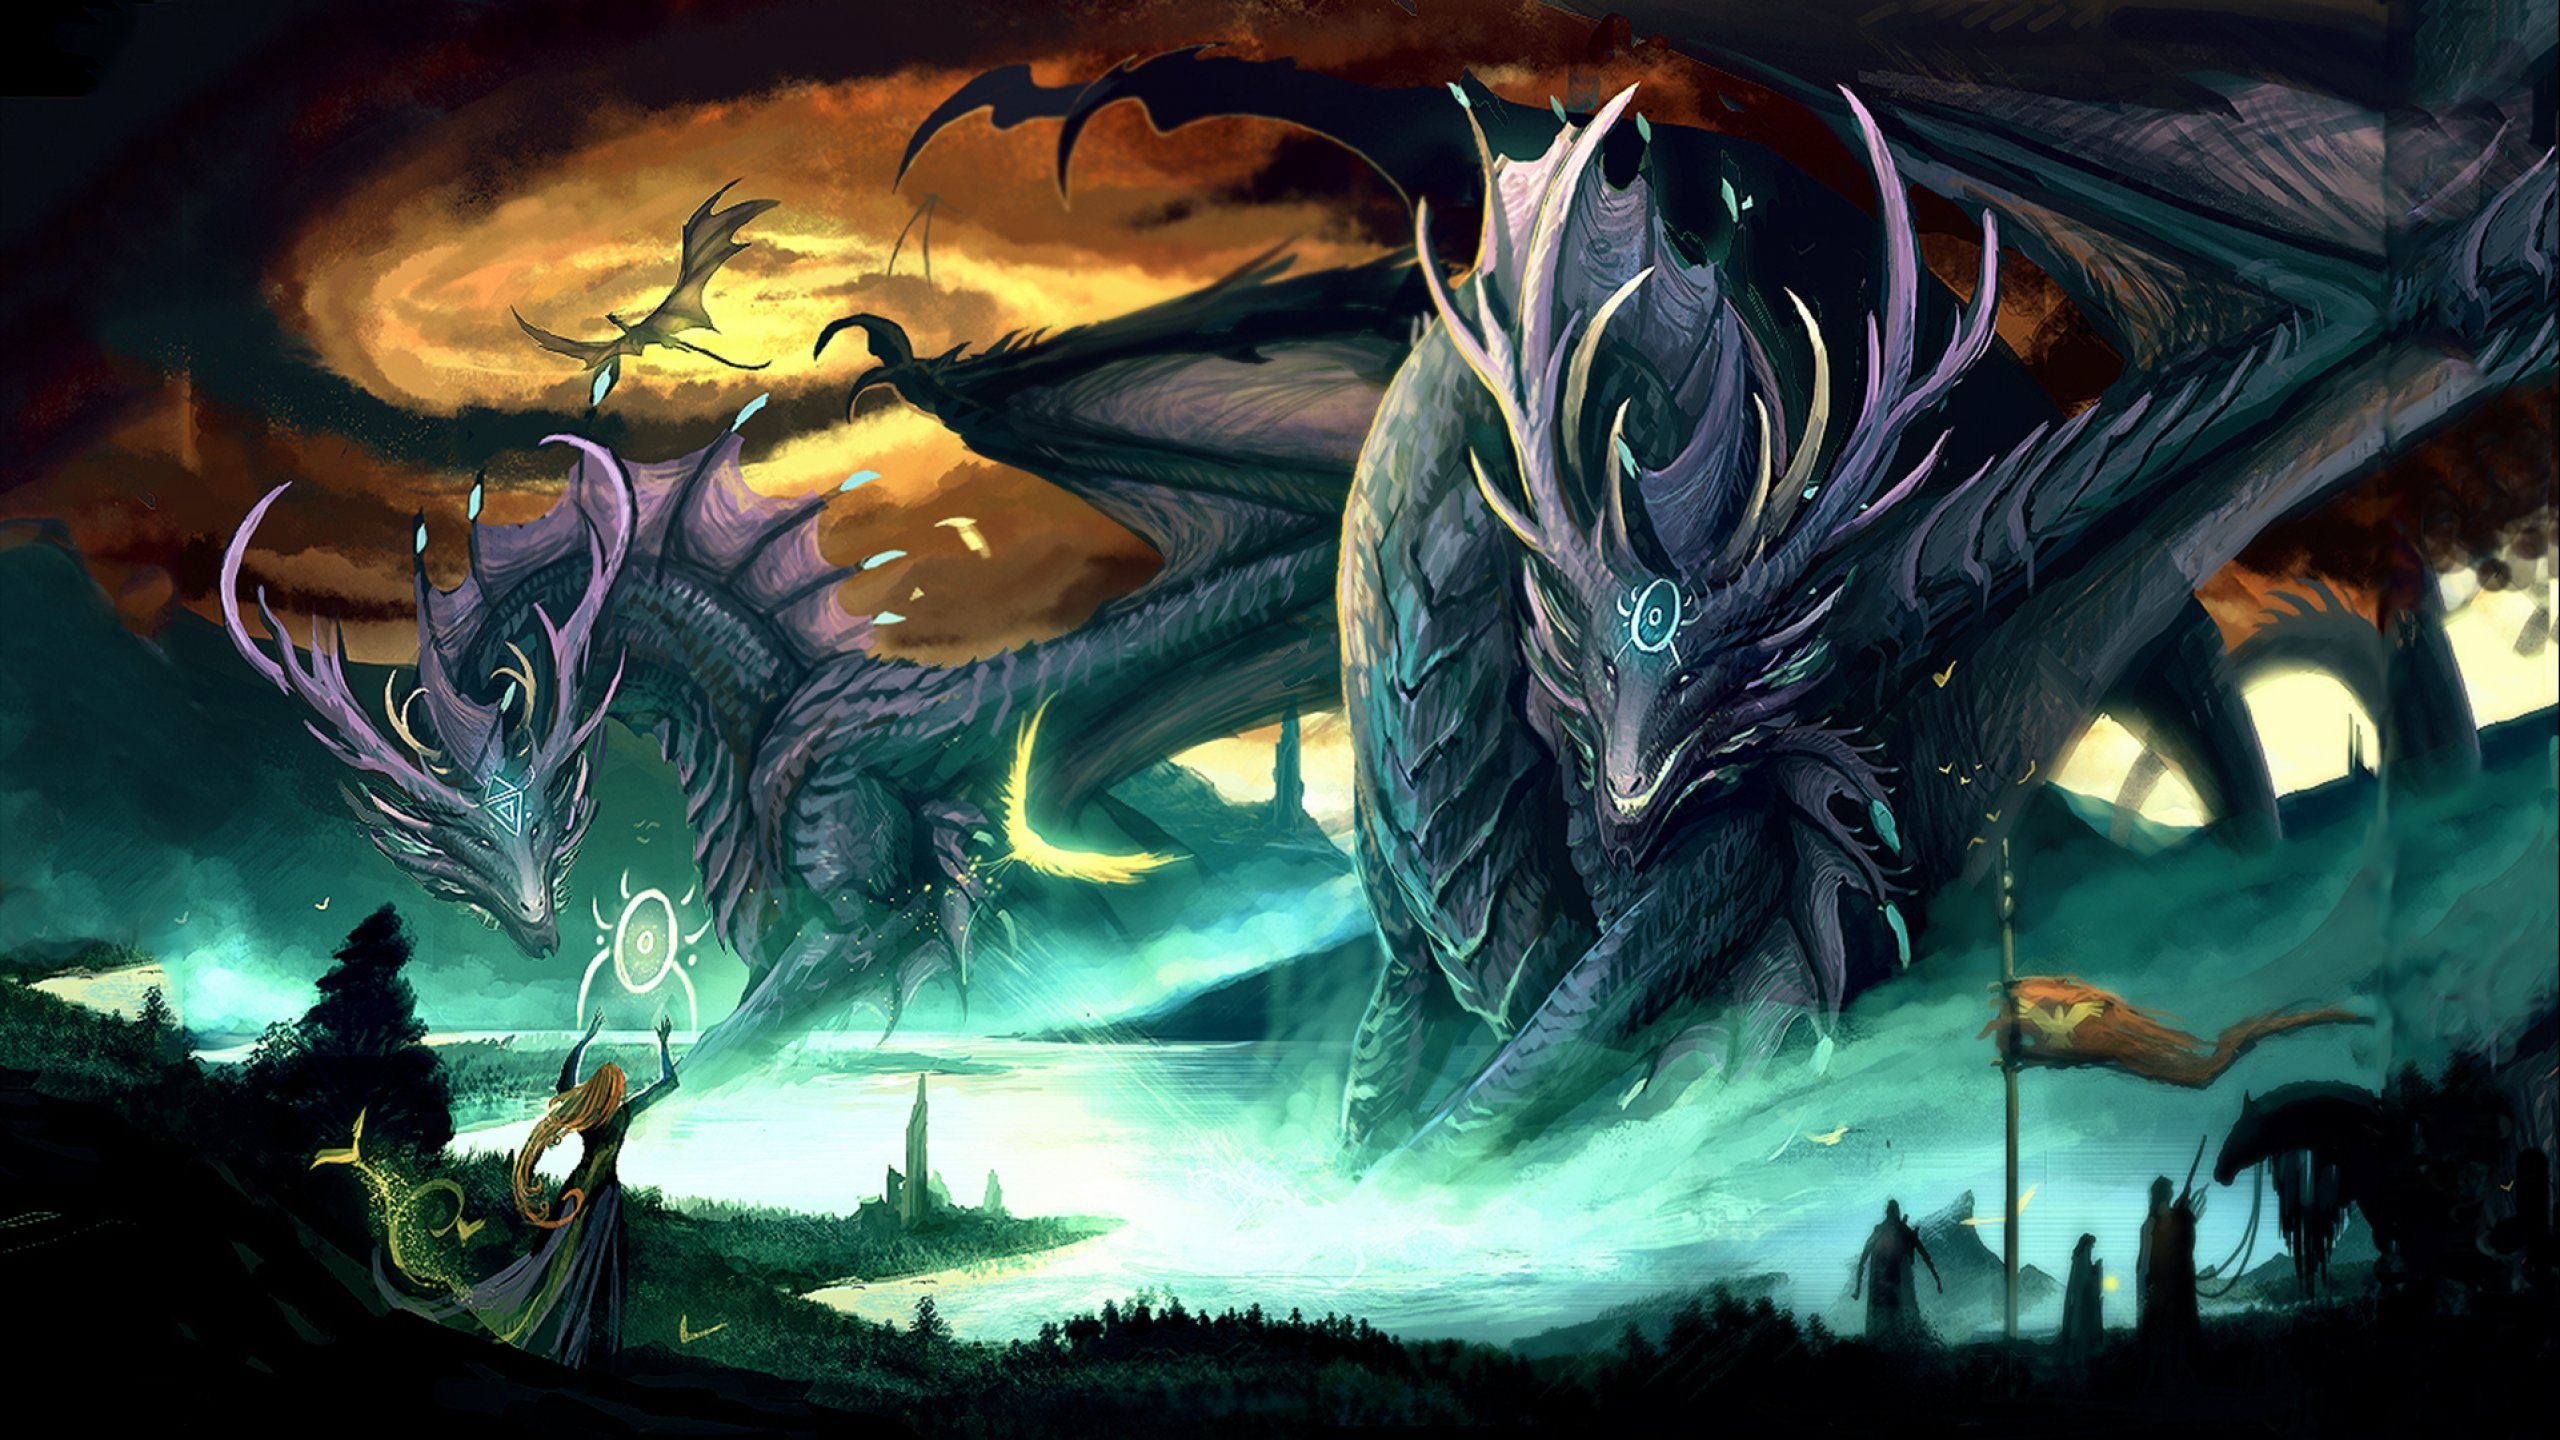 Dragon fantasy artwork art dragons wallpaper | 2560x1440 ...